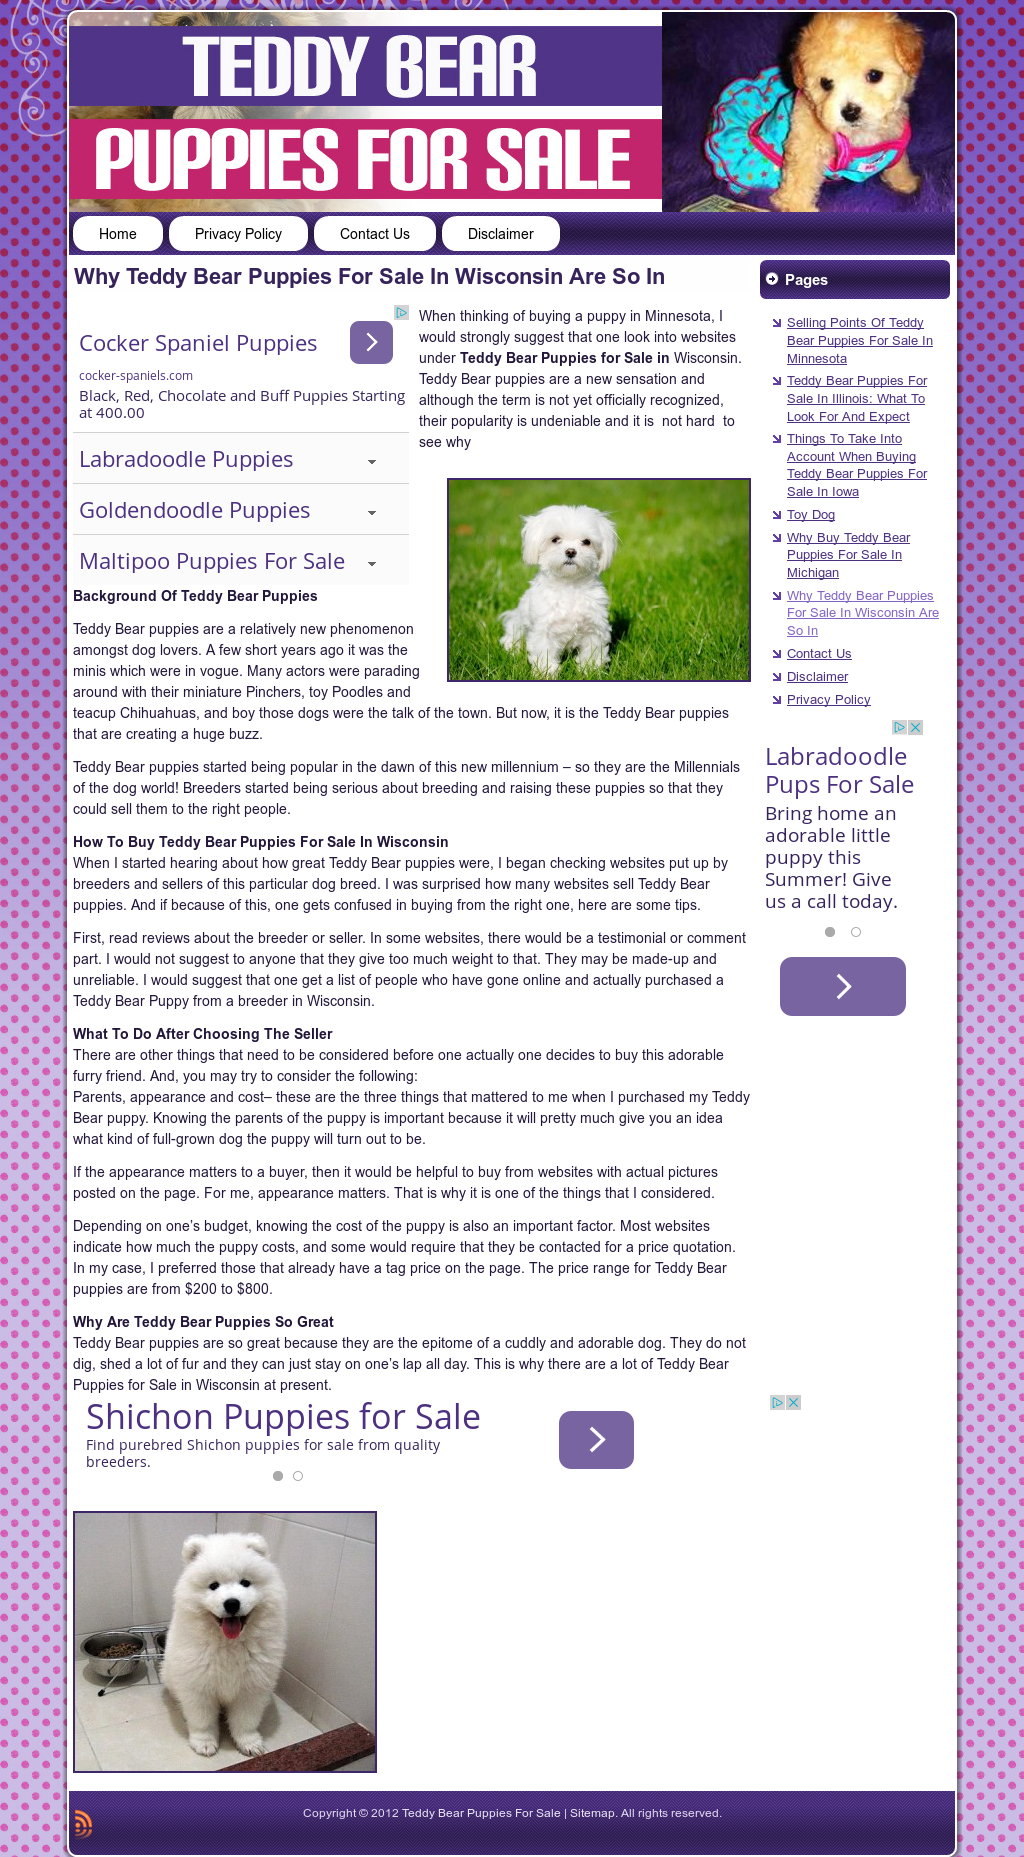 Teddy Bear Puppies For Sale Competitors, Revenue and